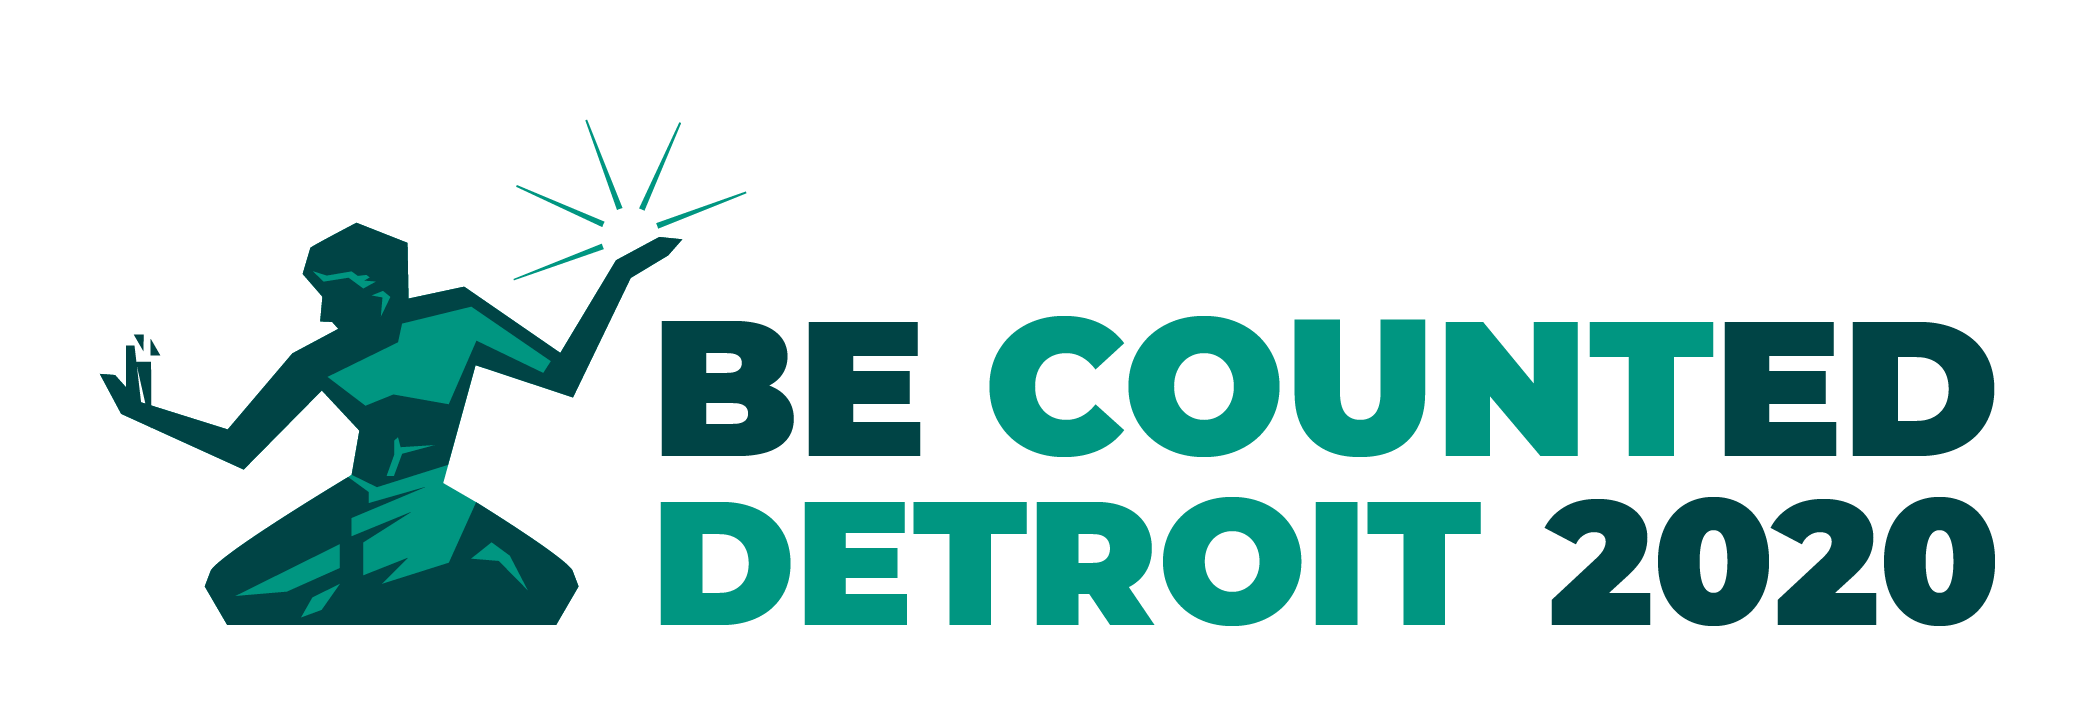 Be Counted Detroit 2020